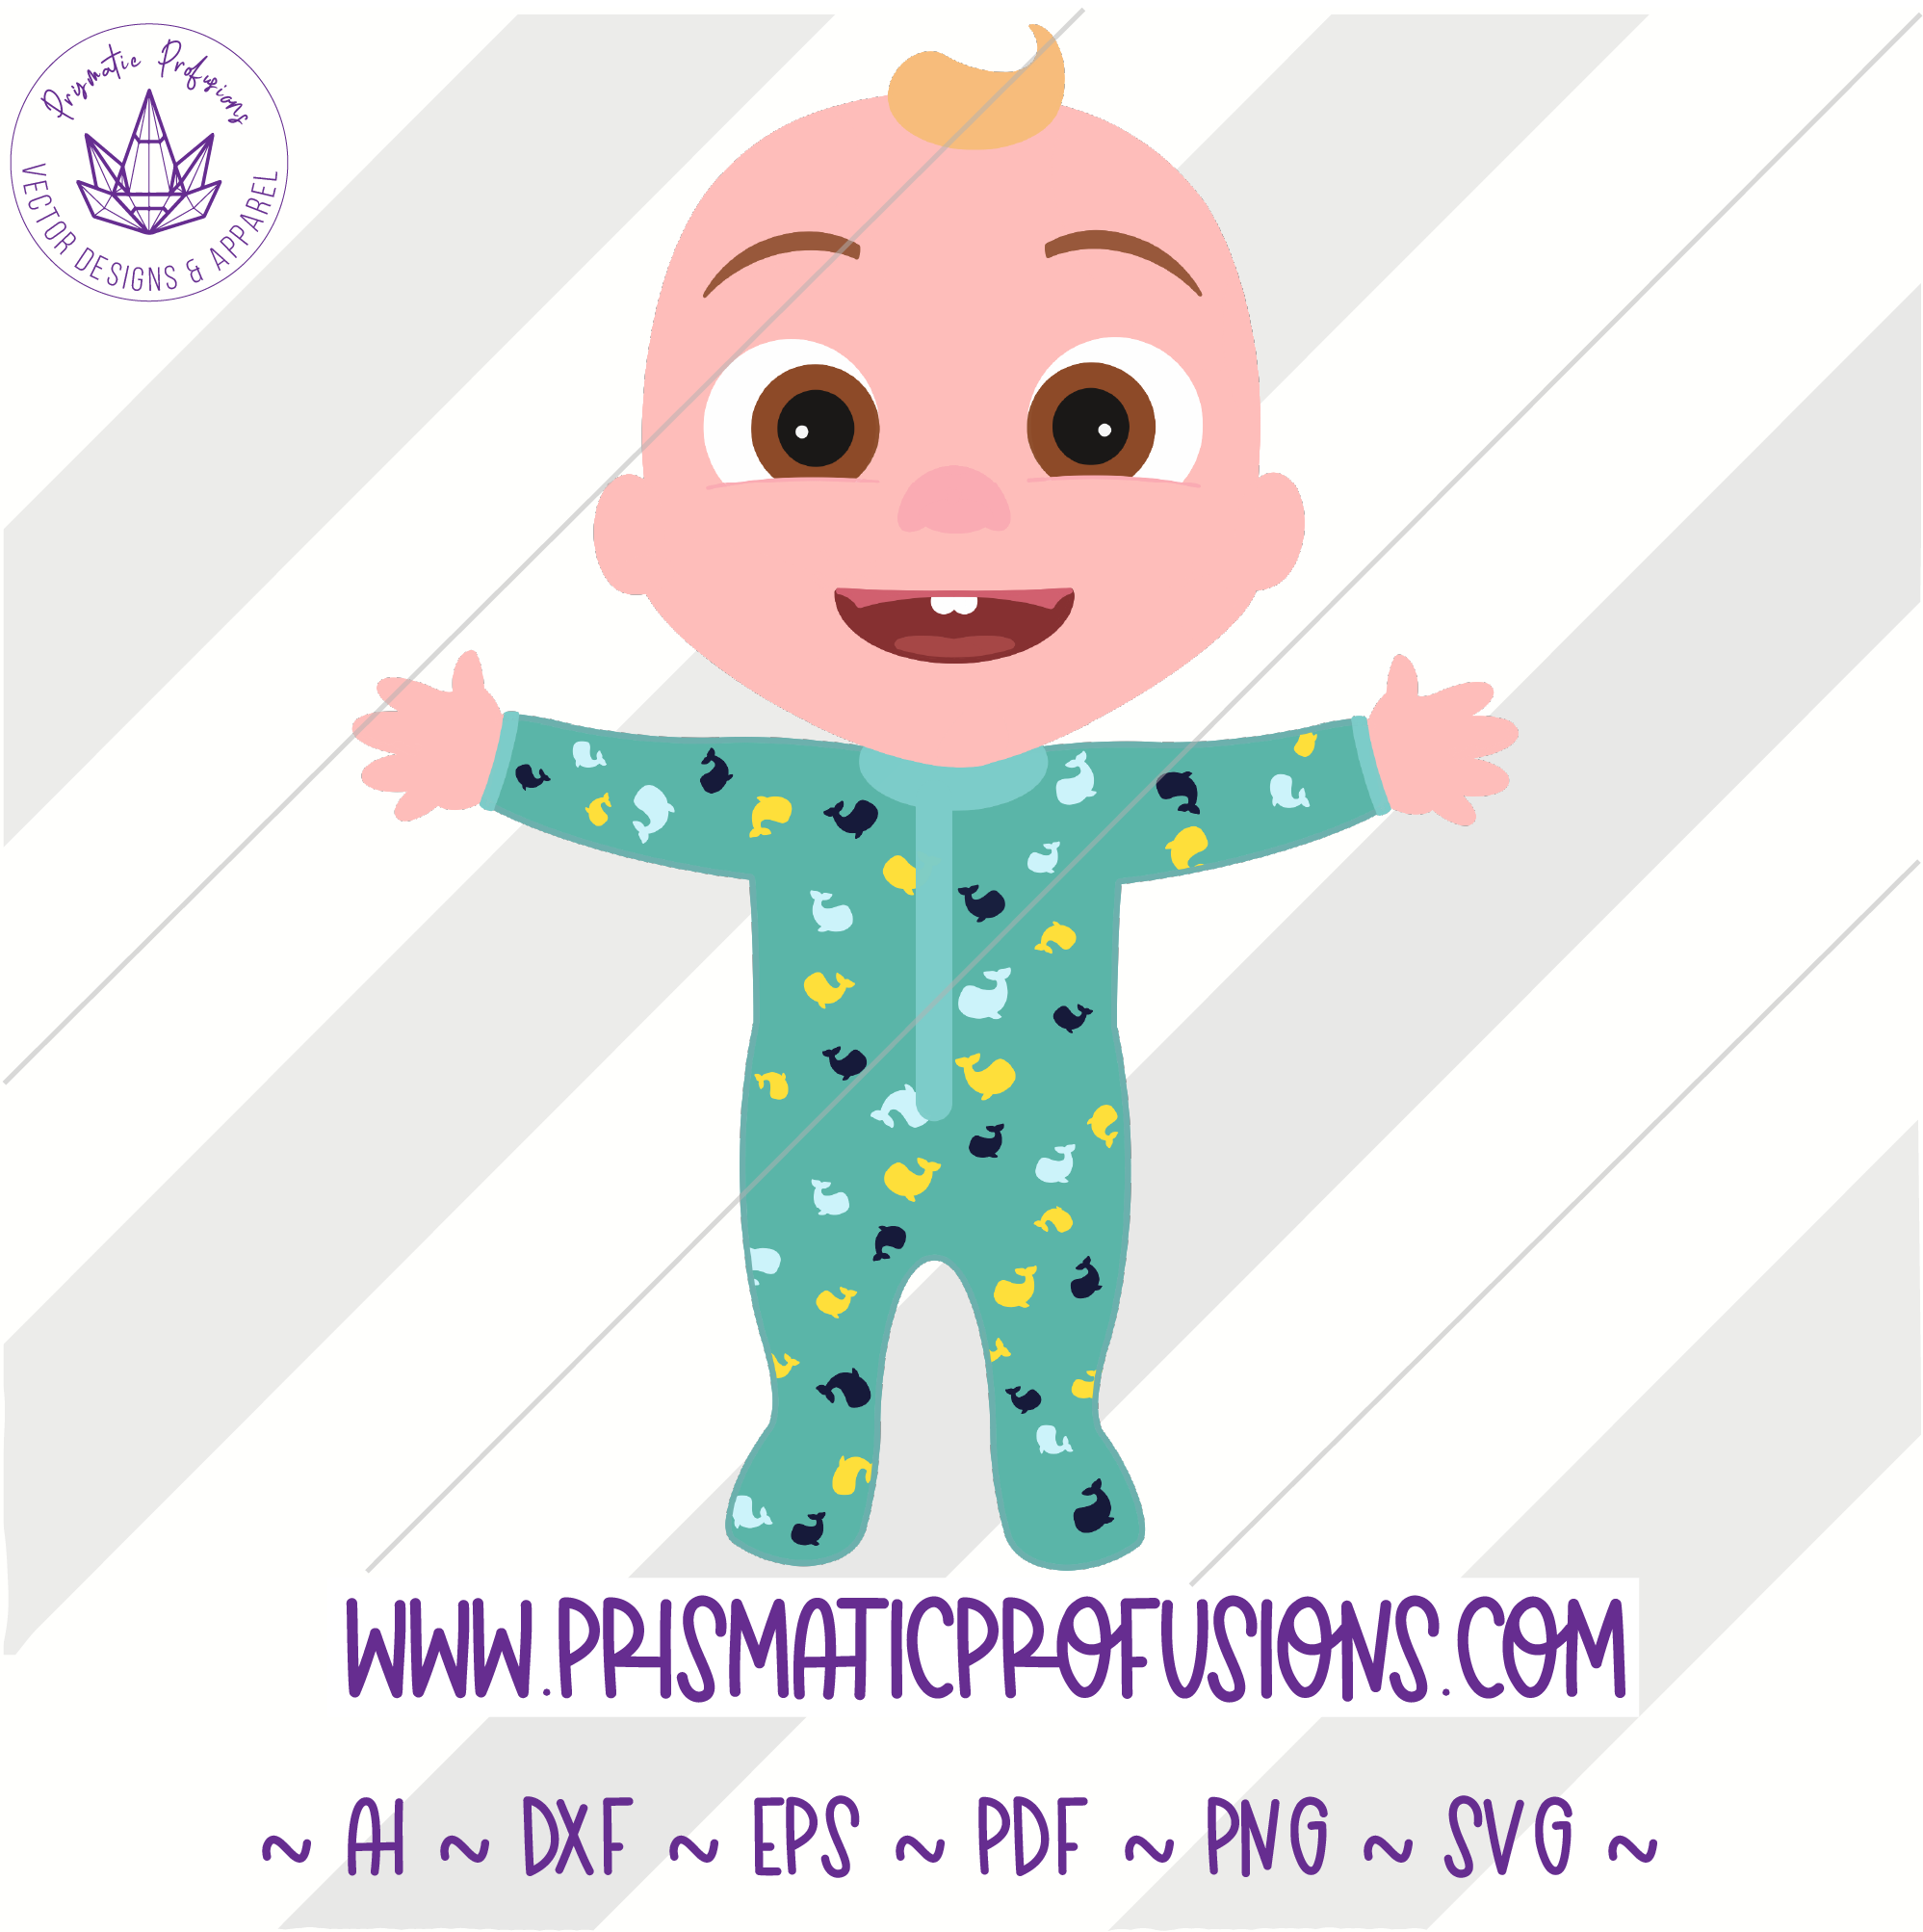 Baby From Cocomelon In 2020 Baby Boy 1st Birthday Party Baby Clip Art 1st Birthday Party Themes Elephant illustration, african bush elephant asian elephant african forest elephant, elephant, mammal, animals png. baby boy 1st birthday party